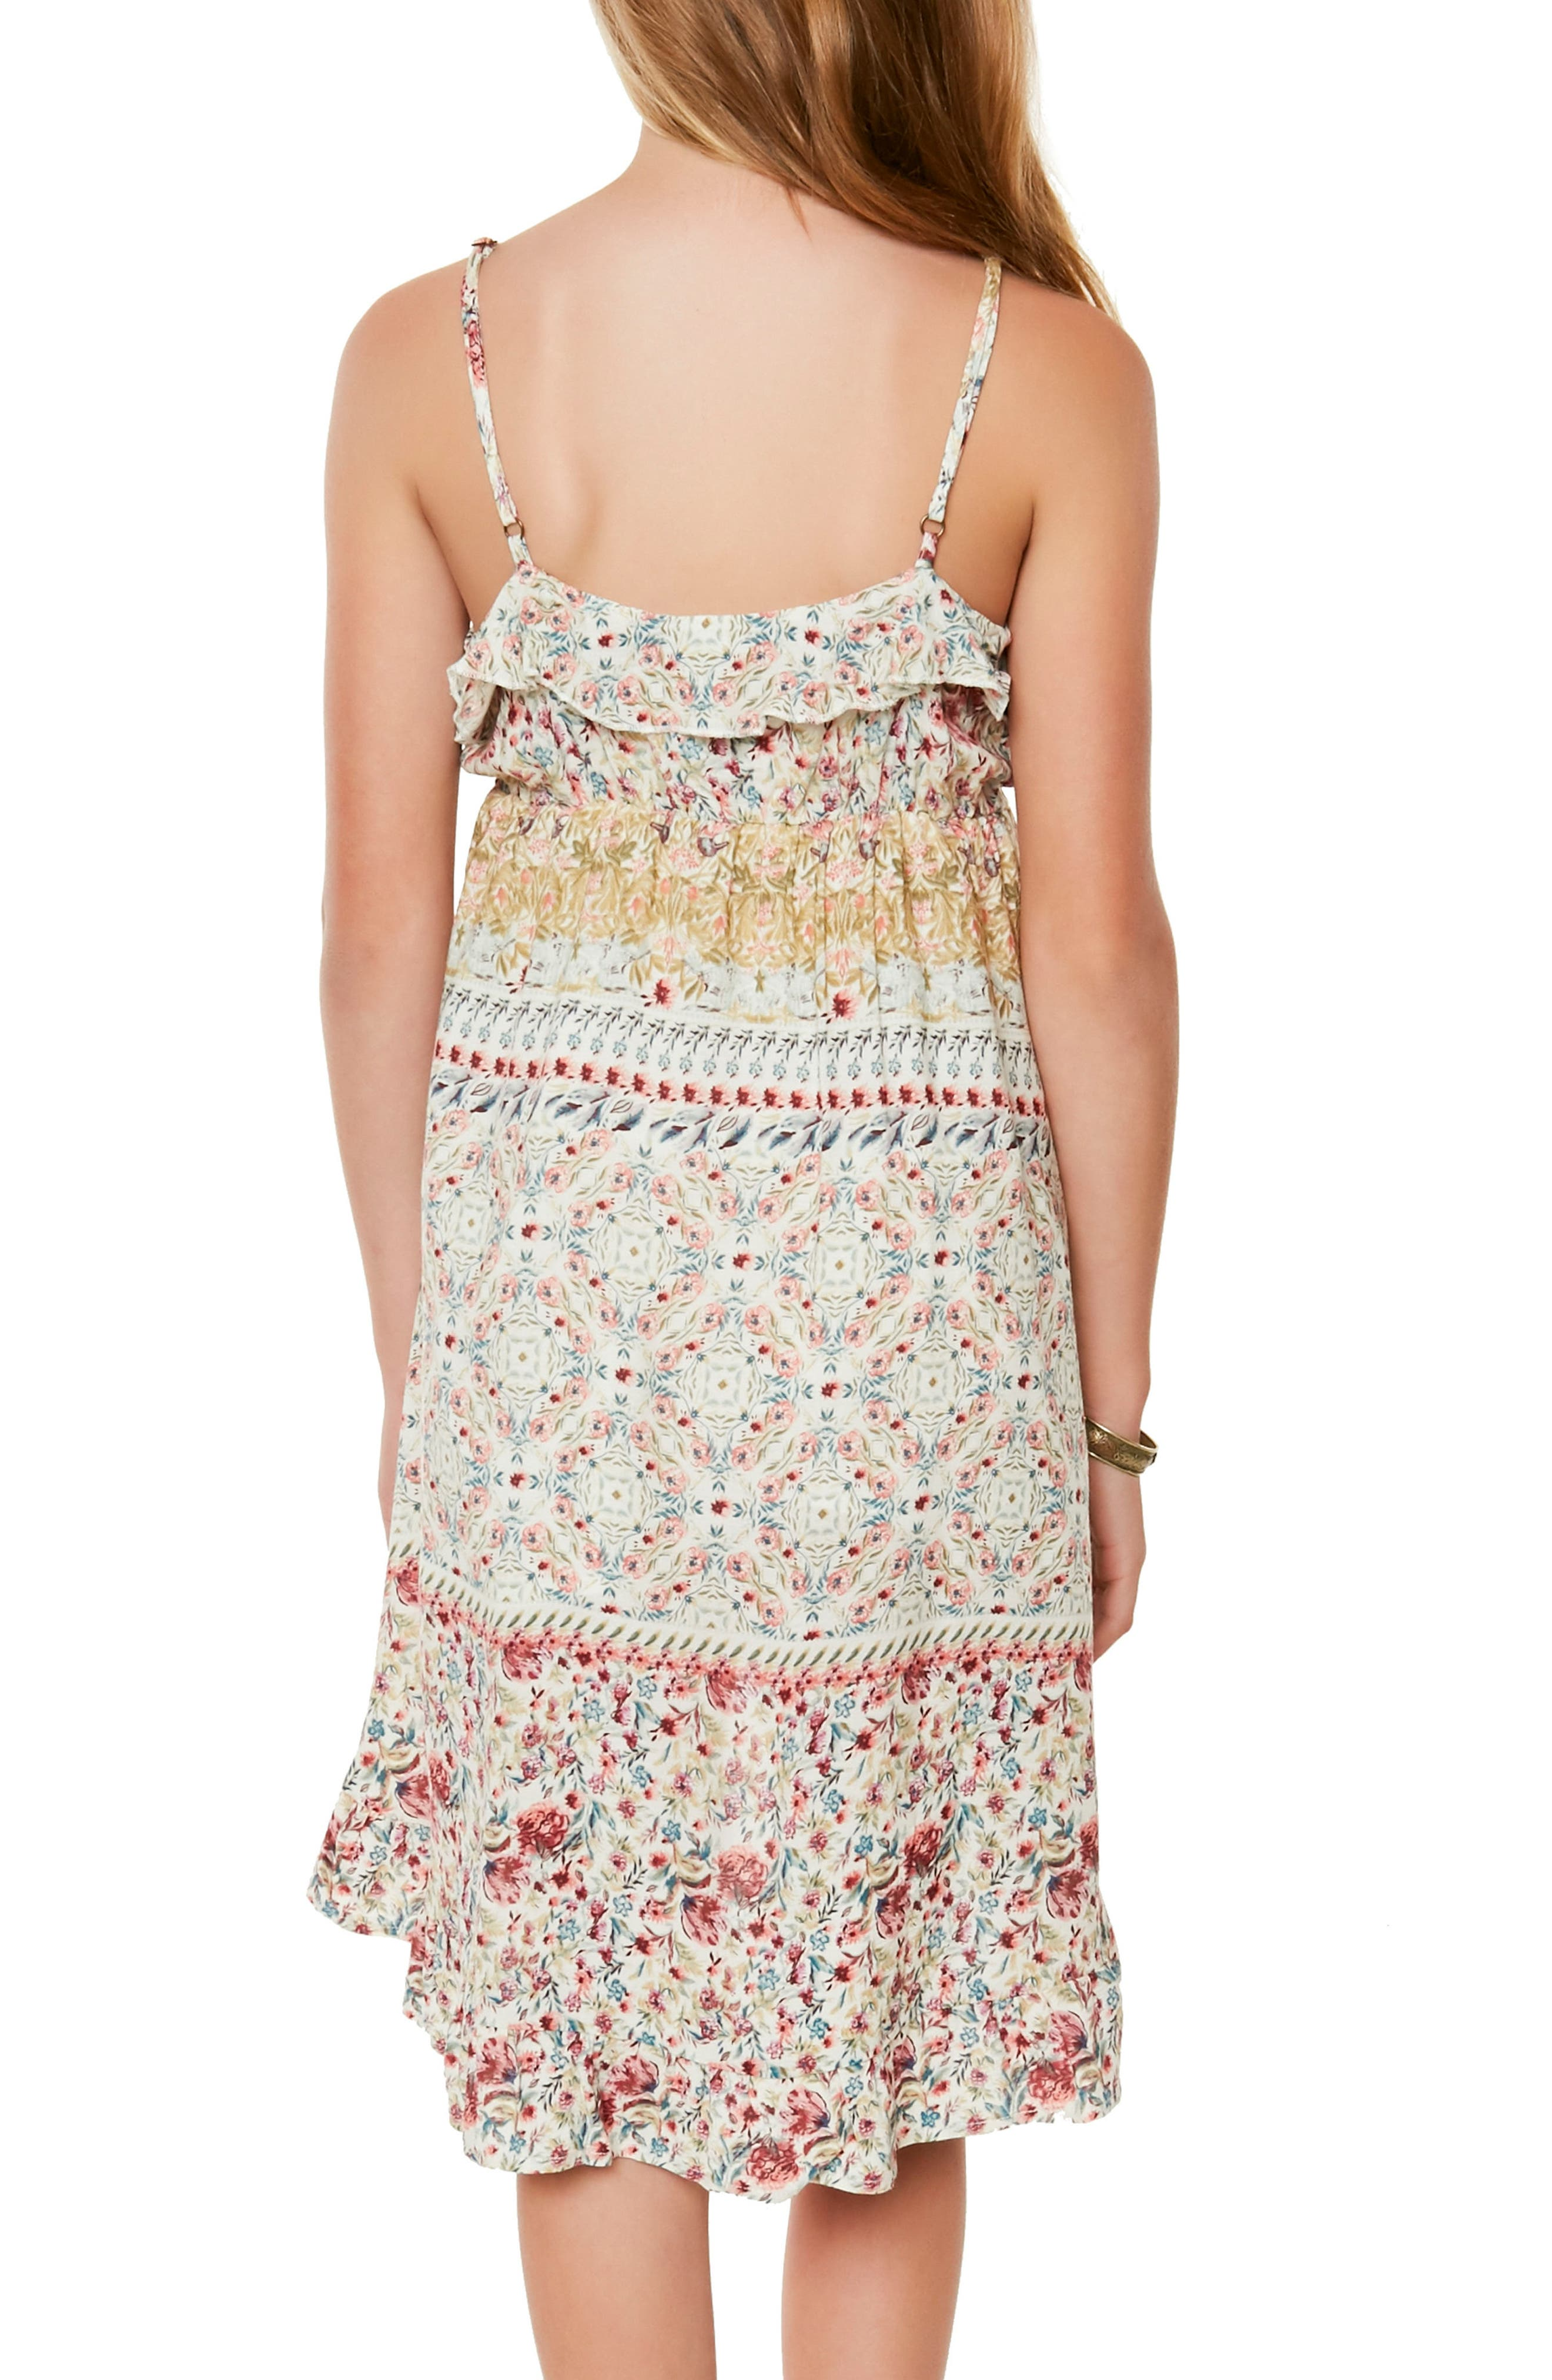 Brooklyn Mixed Print Sundress,                             Alternate thumbnail 5, color,                             Naked - Wwh